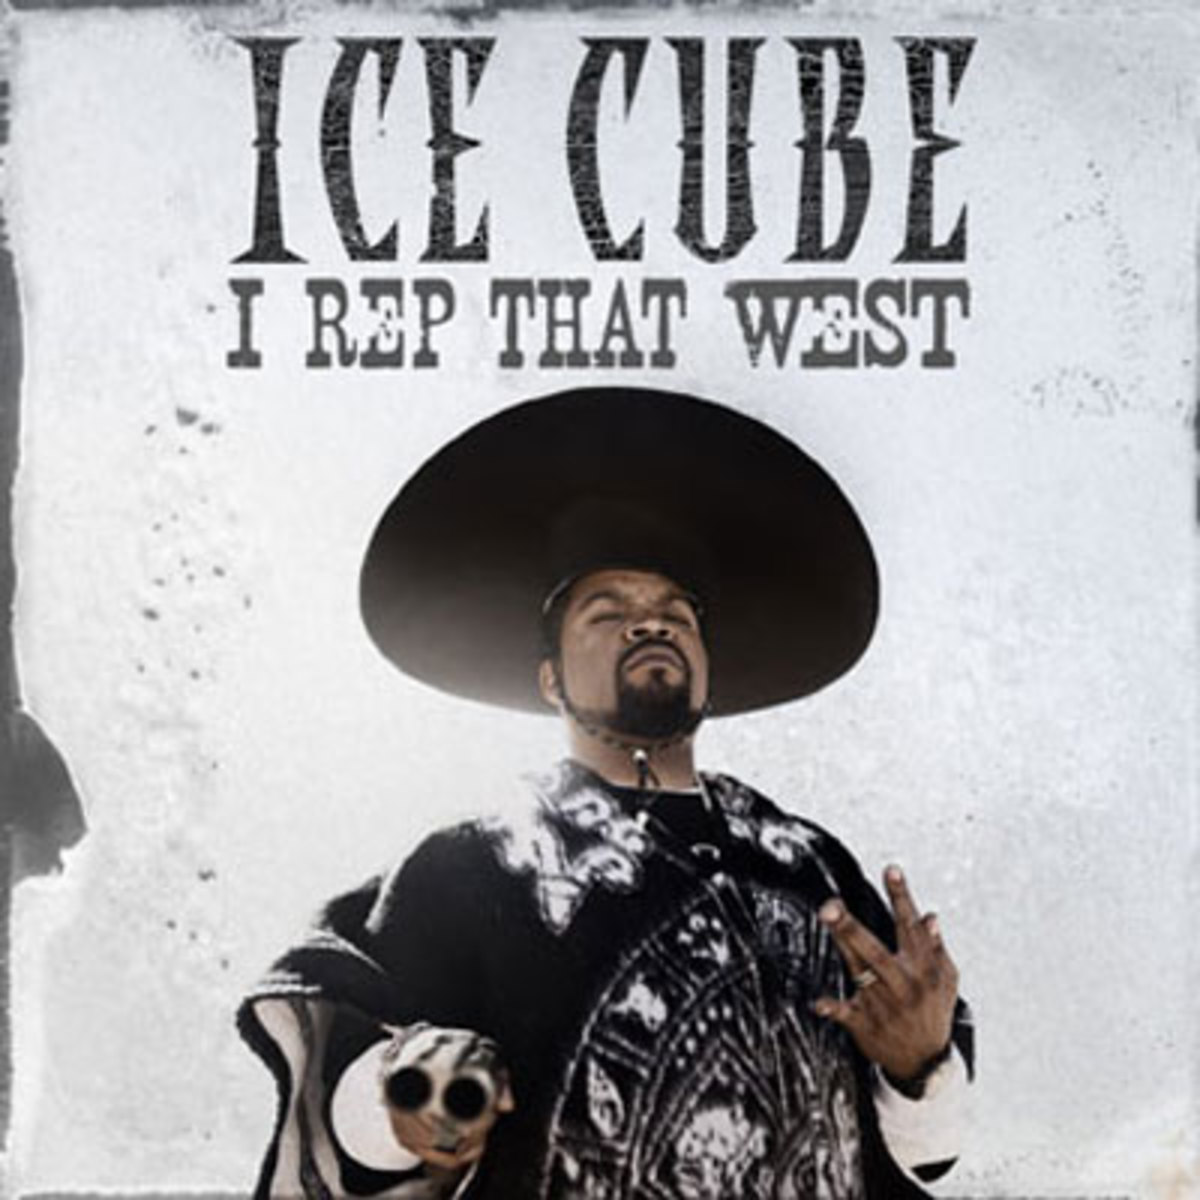 Ice Cube Cover Photo Cool ice cube - i rep that west - djbooth